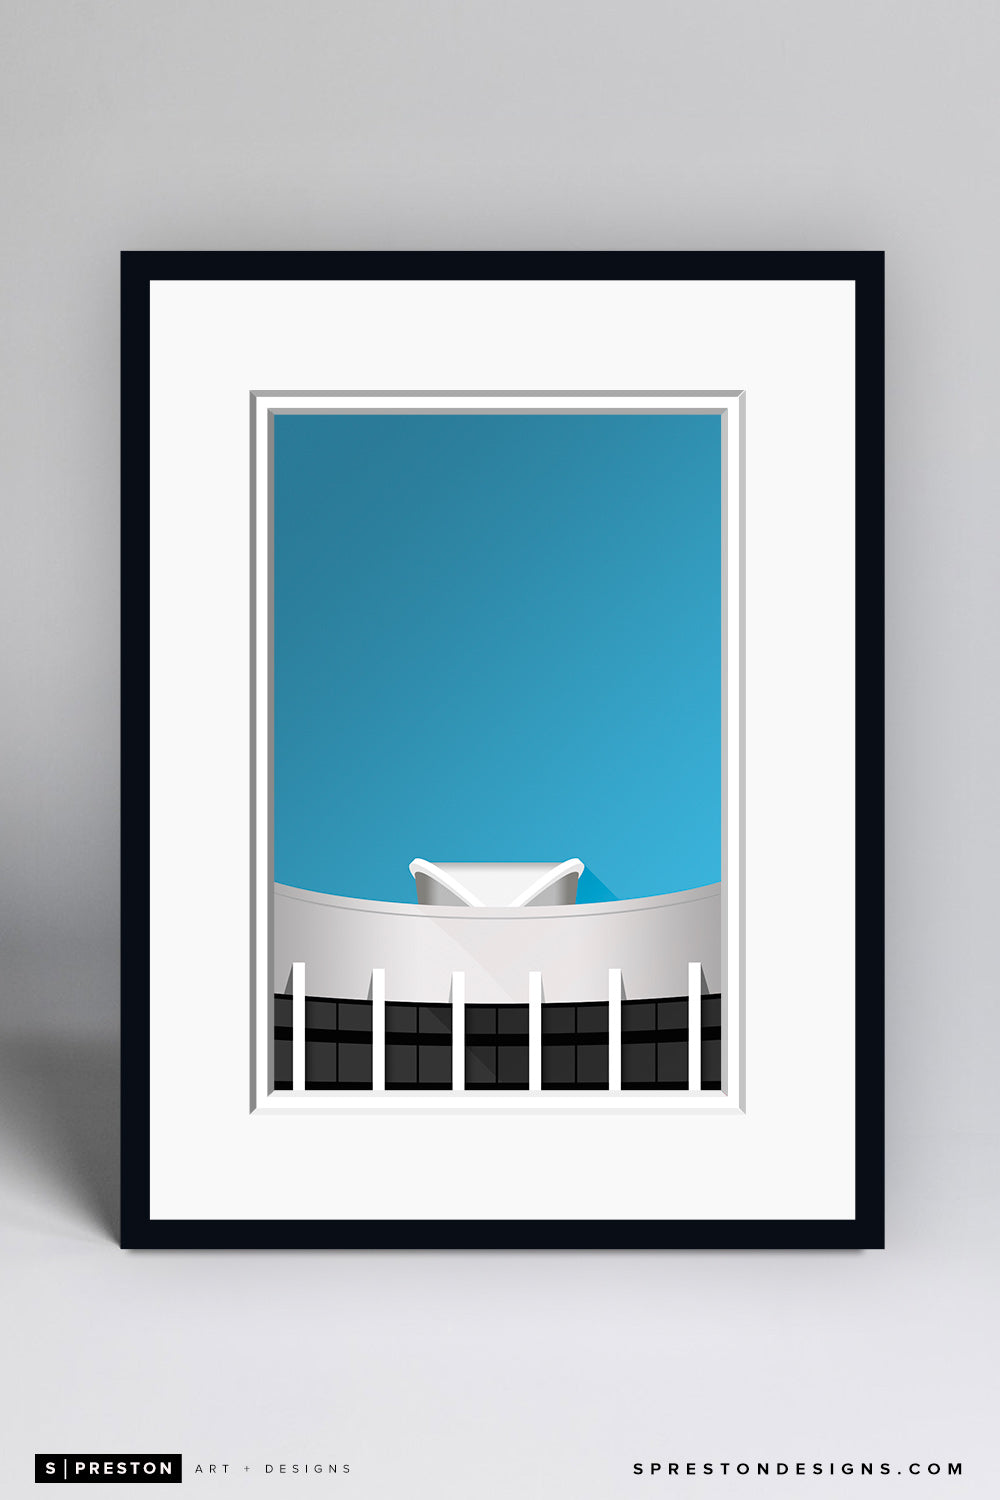 Minimalist Assembly Hall Art Print - Indiana University - S. Preston Art + Designs